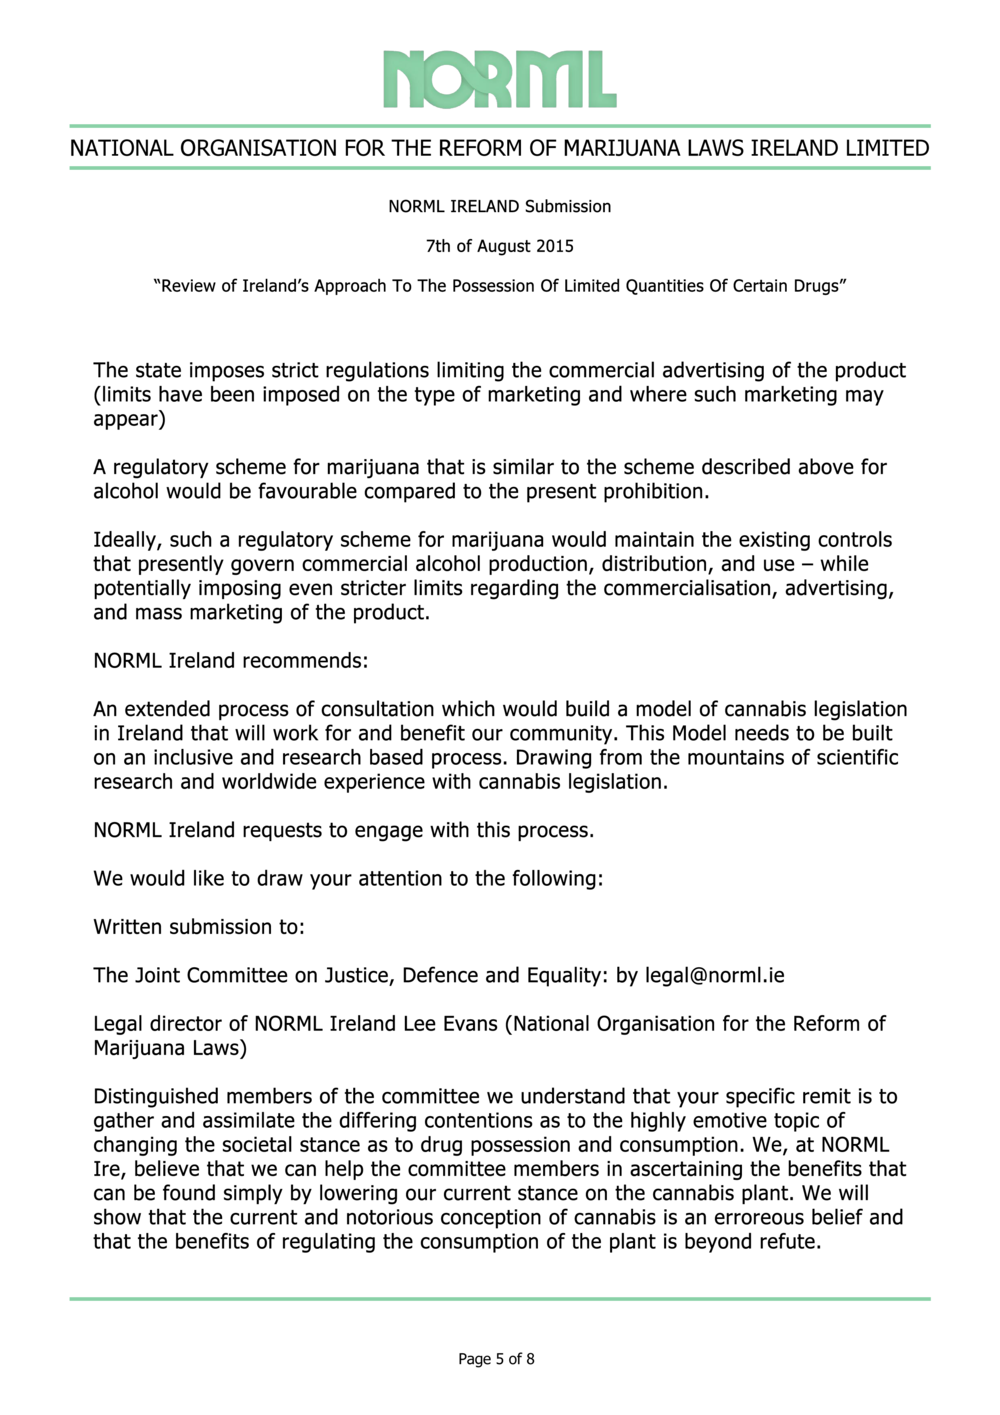 NORML Ireland Submission Page 5 of 8.png